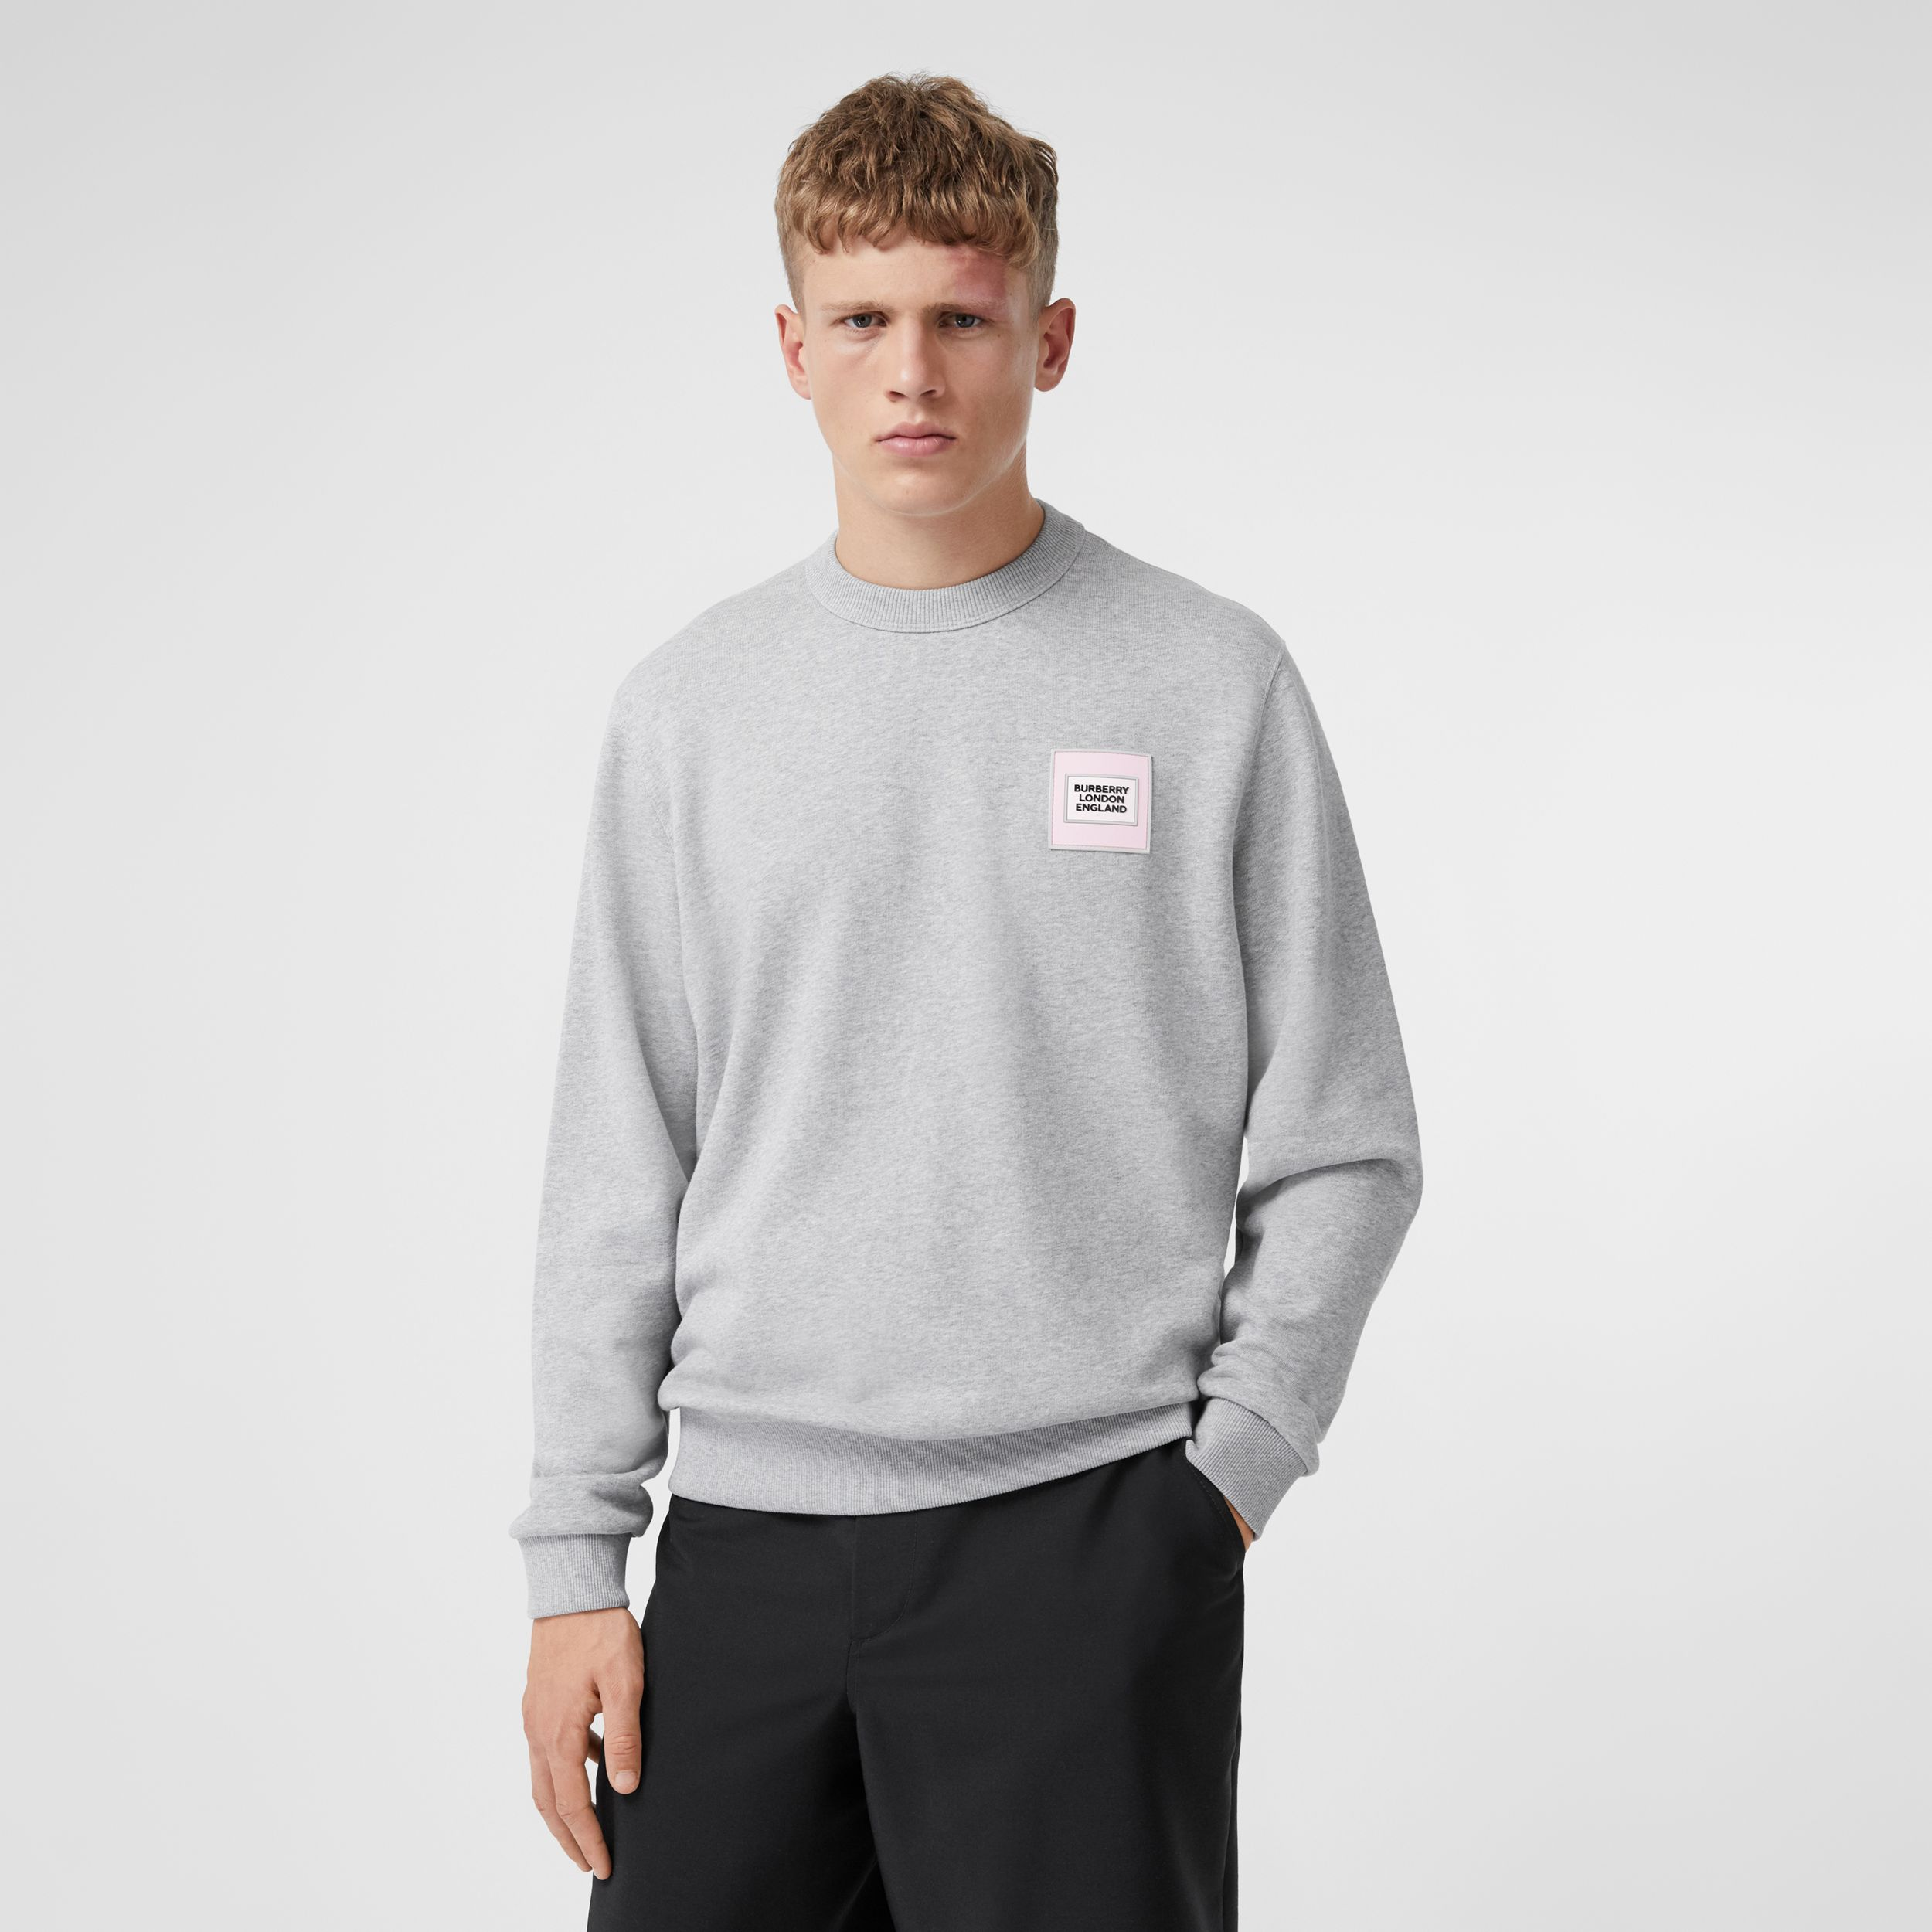 Logo Appliqué Cotton Sweatshirt in Pale Grey Melange - Men | Burberry - 1